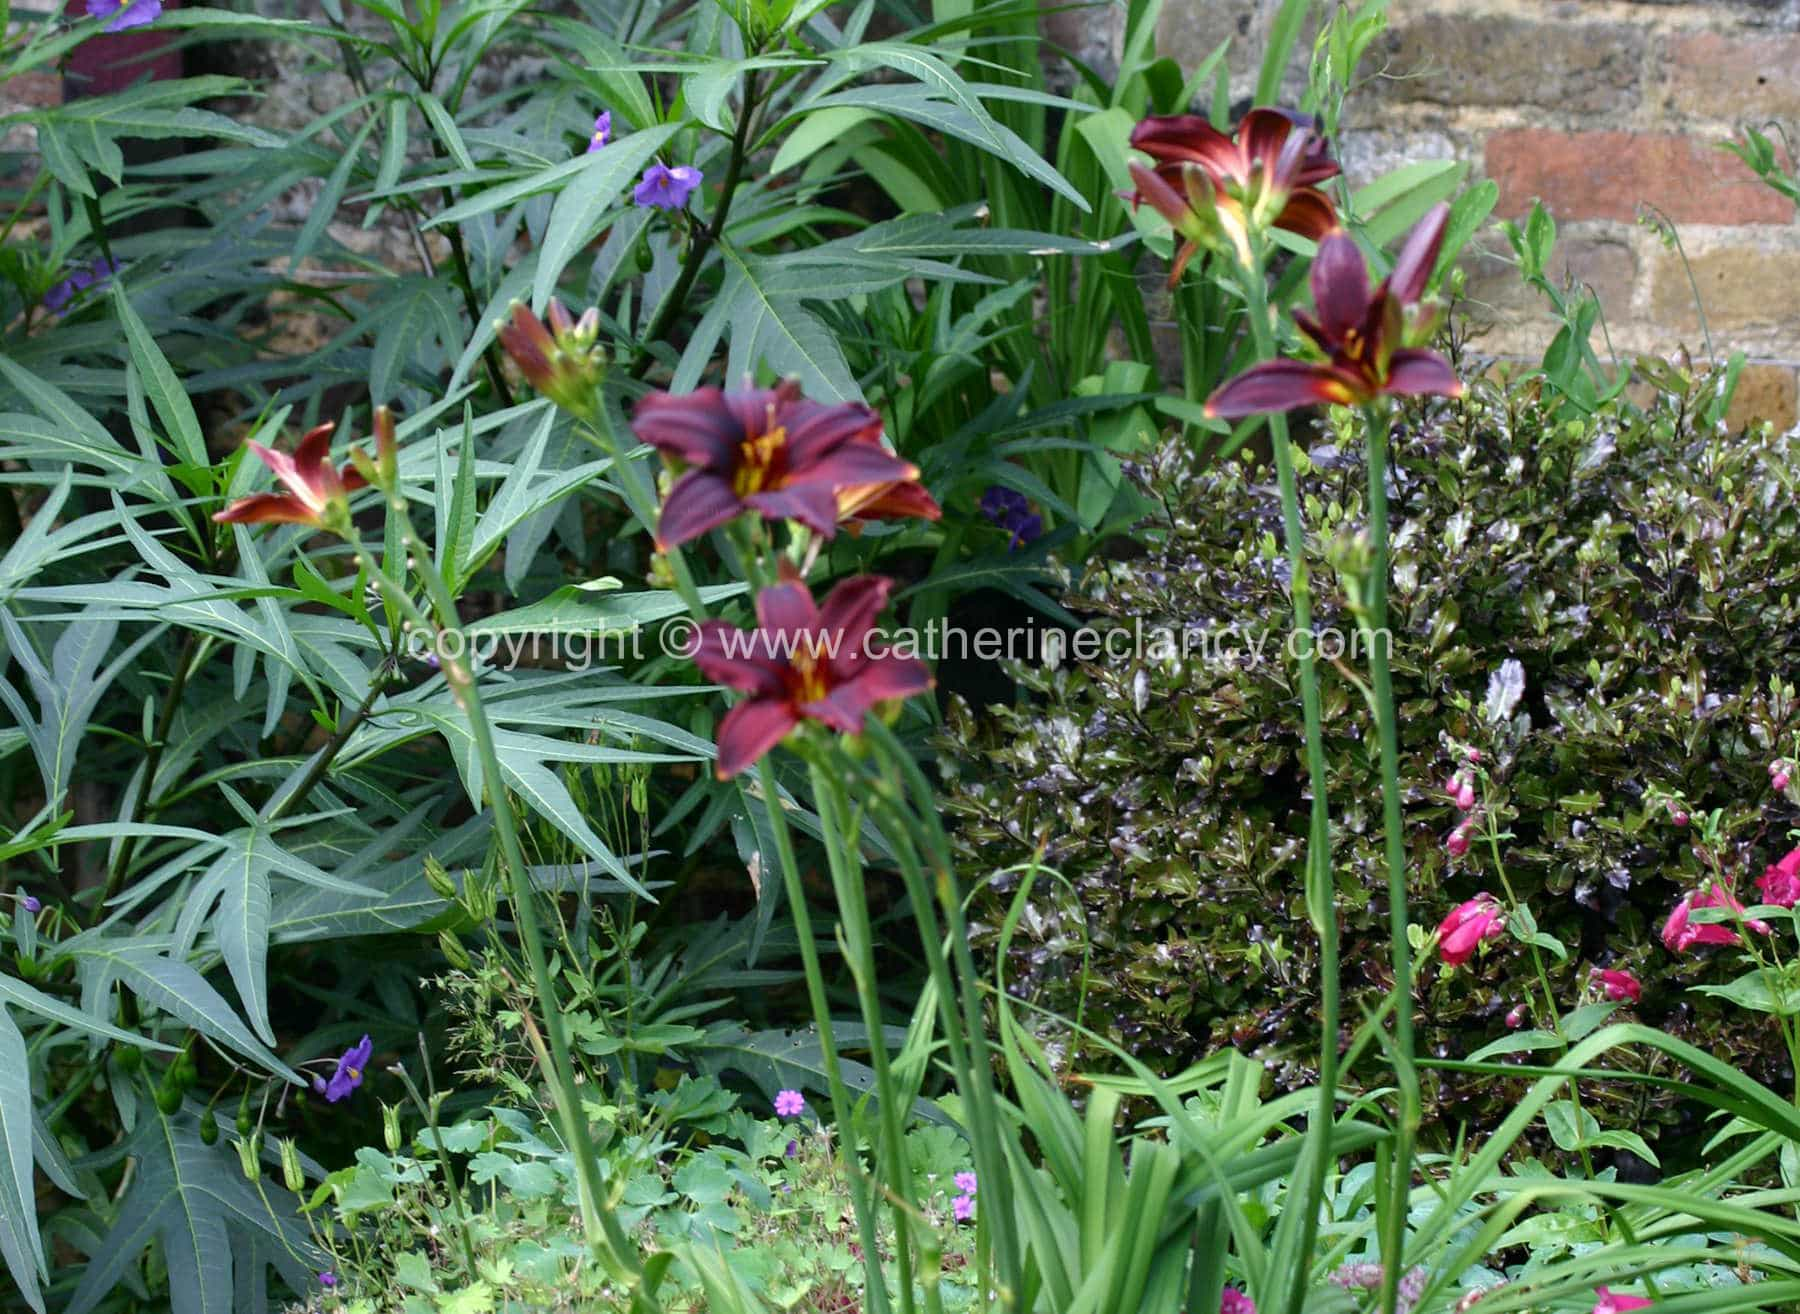 blackheath-walled-garden-flowerbed